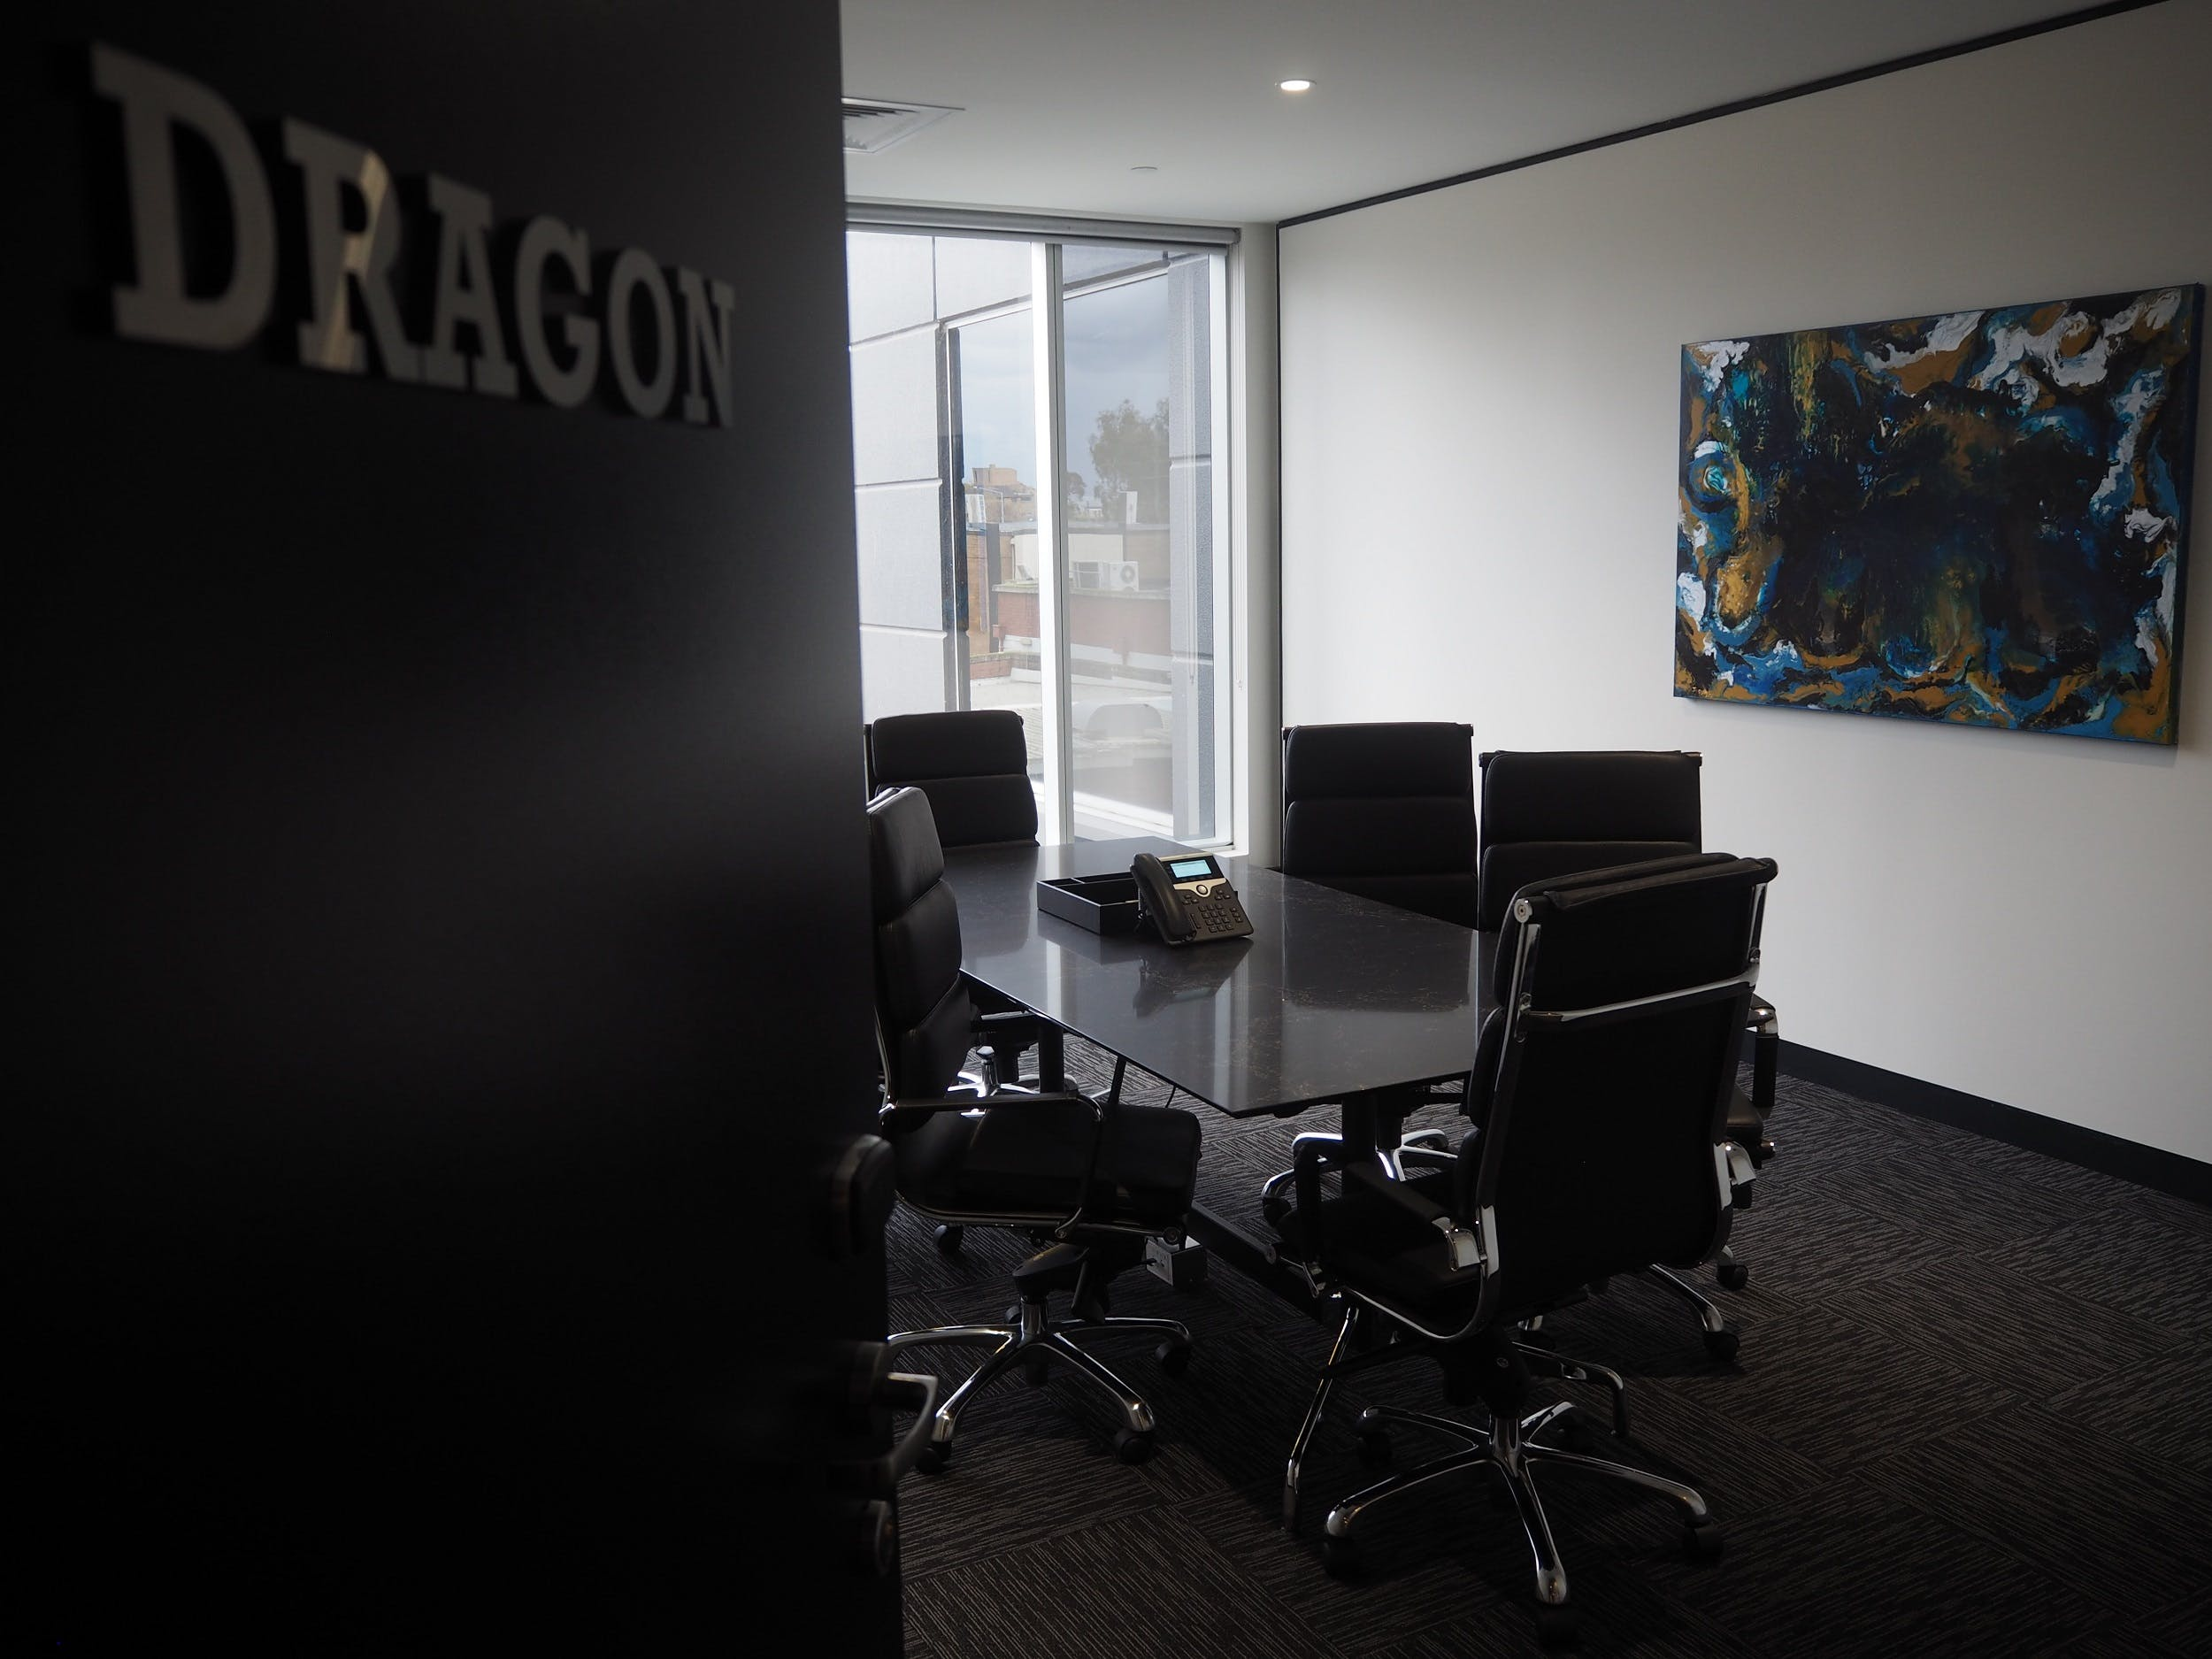 Dragon, meeting room at Victory Offices | Box Hill Meeting Rooms, image 1